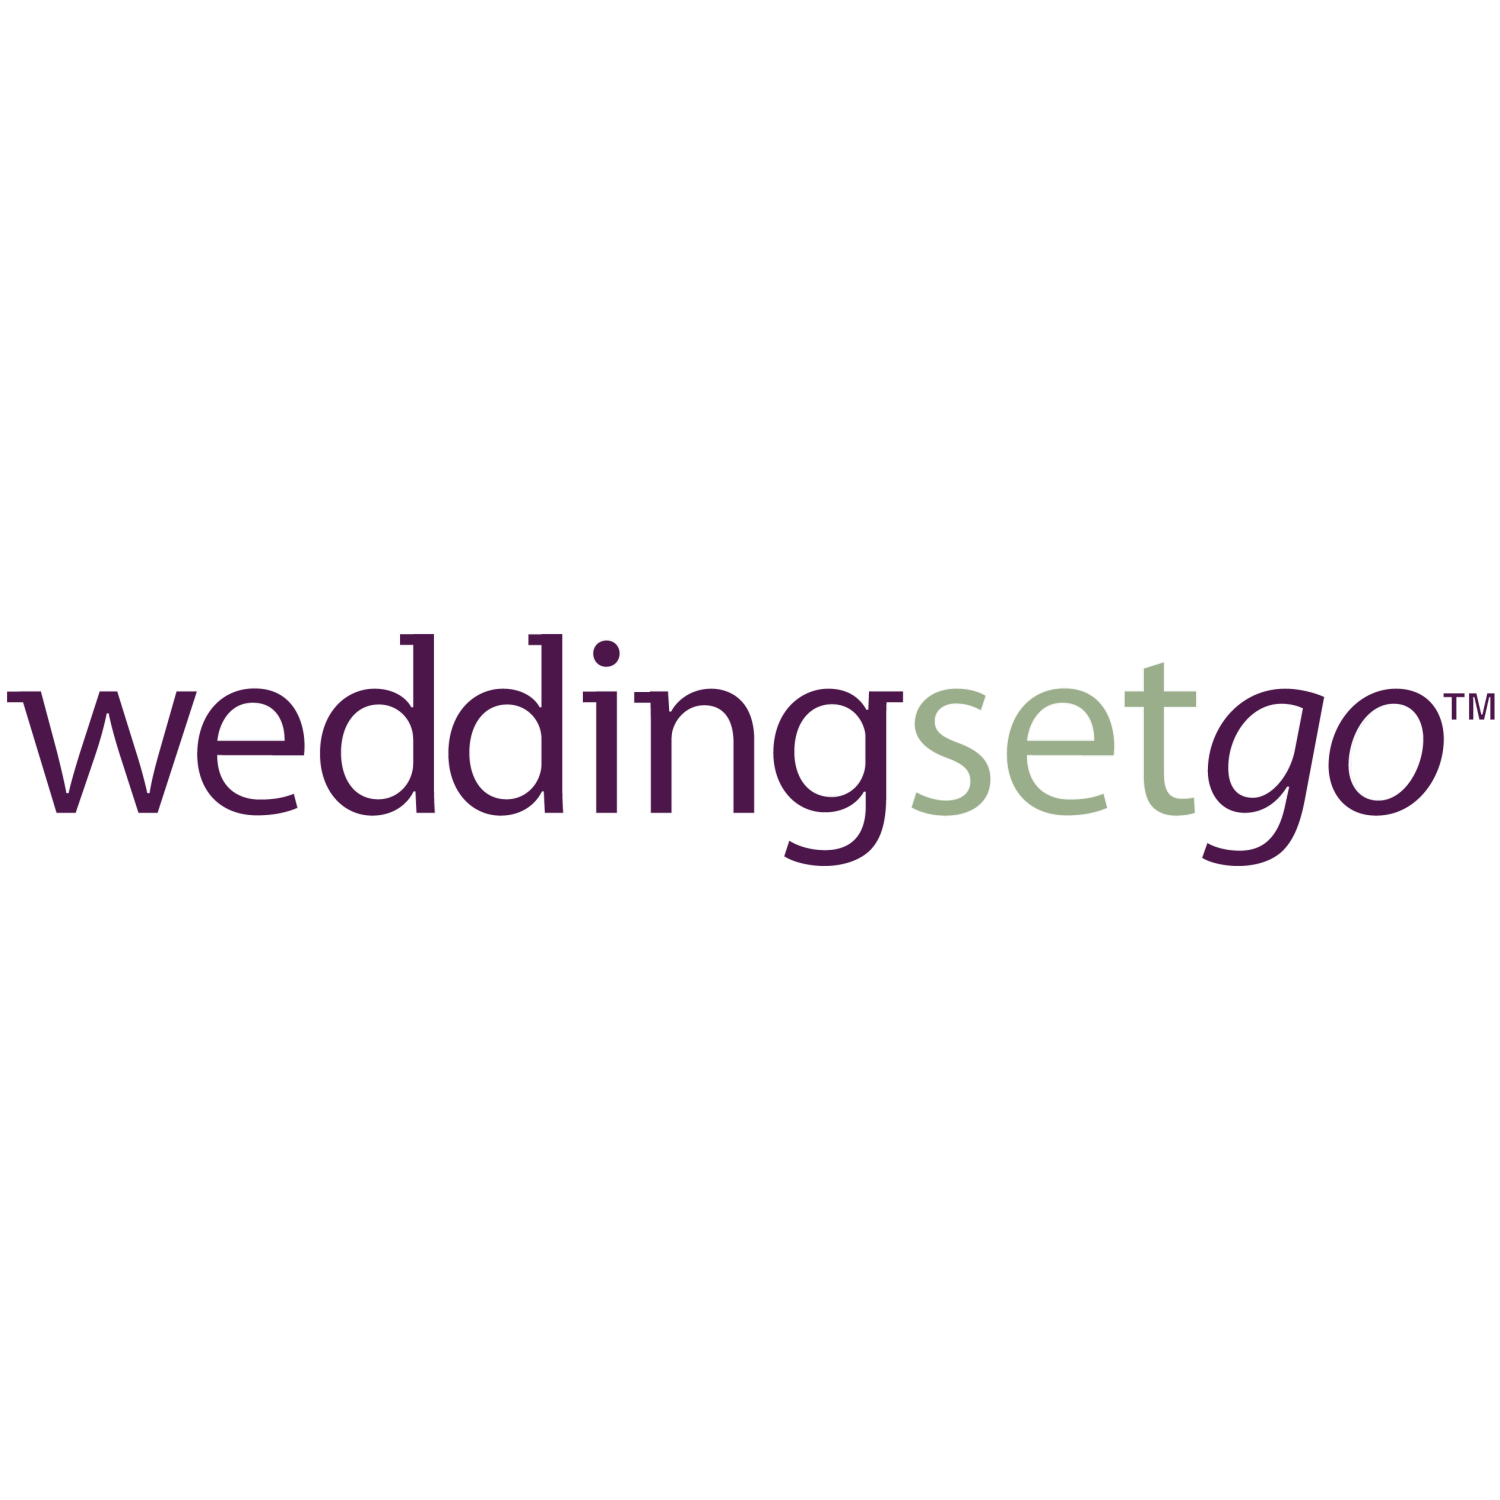 Weddingsetgo